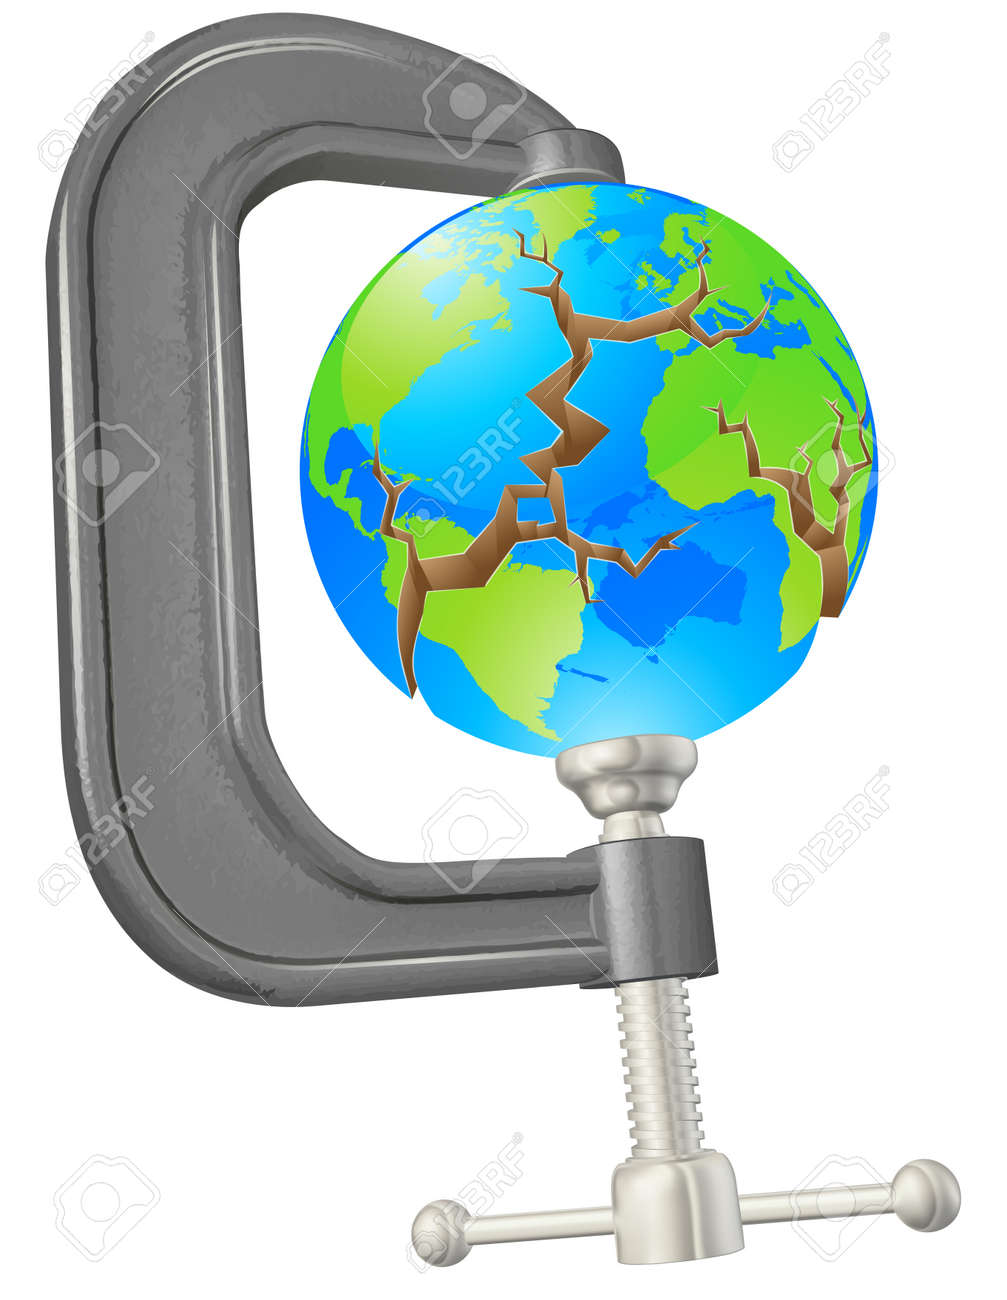 Illustration of a clamp cracking a world globe concept Stock Vector - 25210380